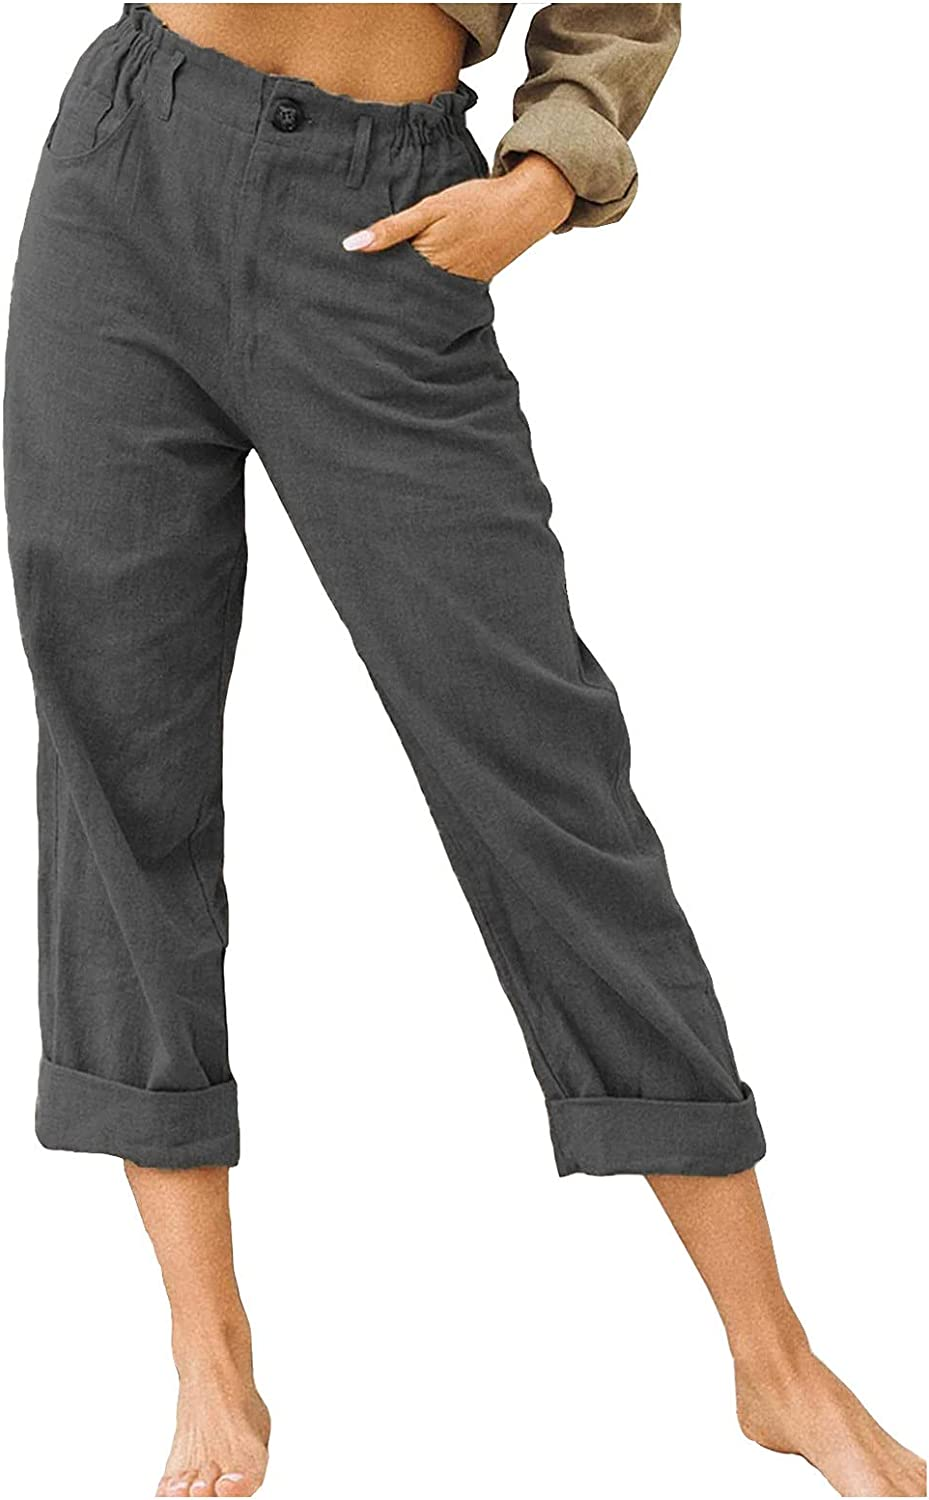 RealKing Women's Comfy Casual Pants Solid Color Button Lounge Pants Loose Trousers Relaxed Fit Capri Pant with Pockets